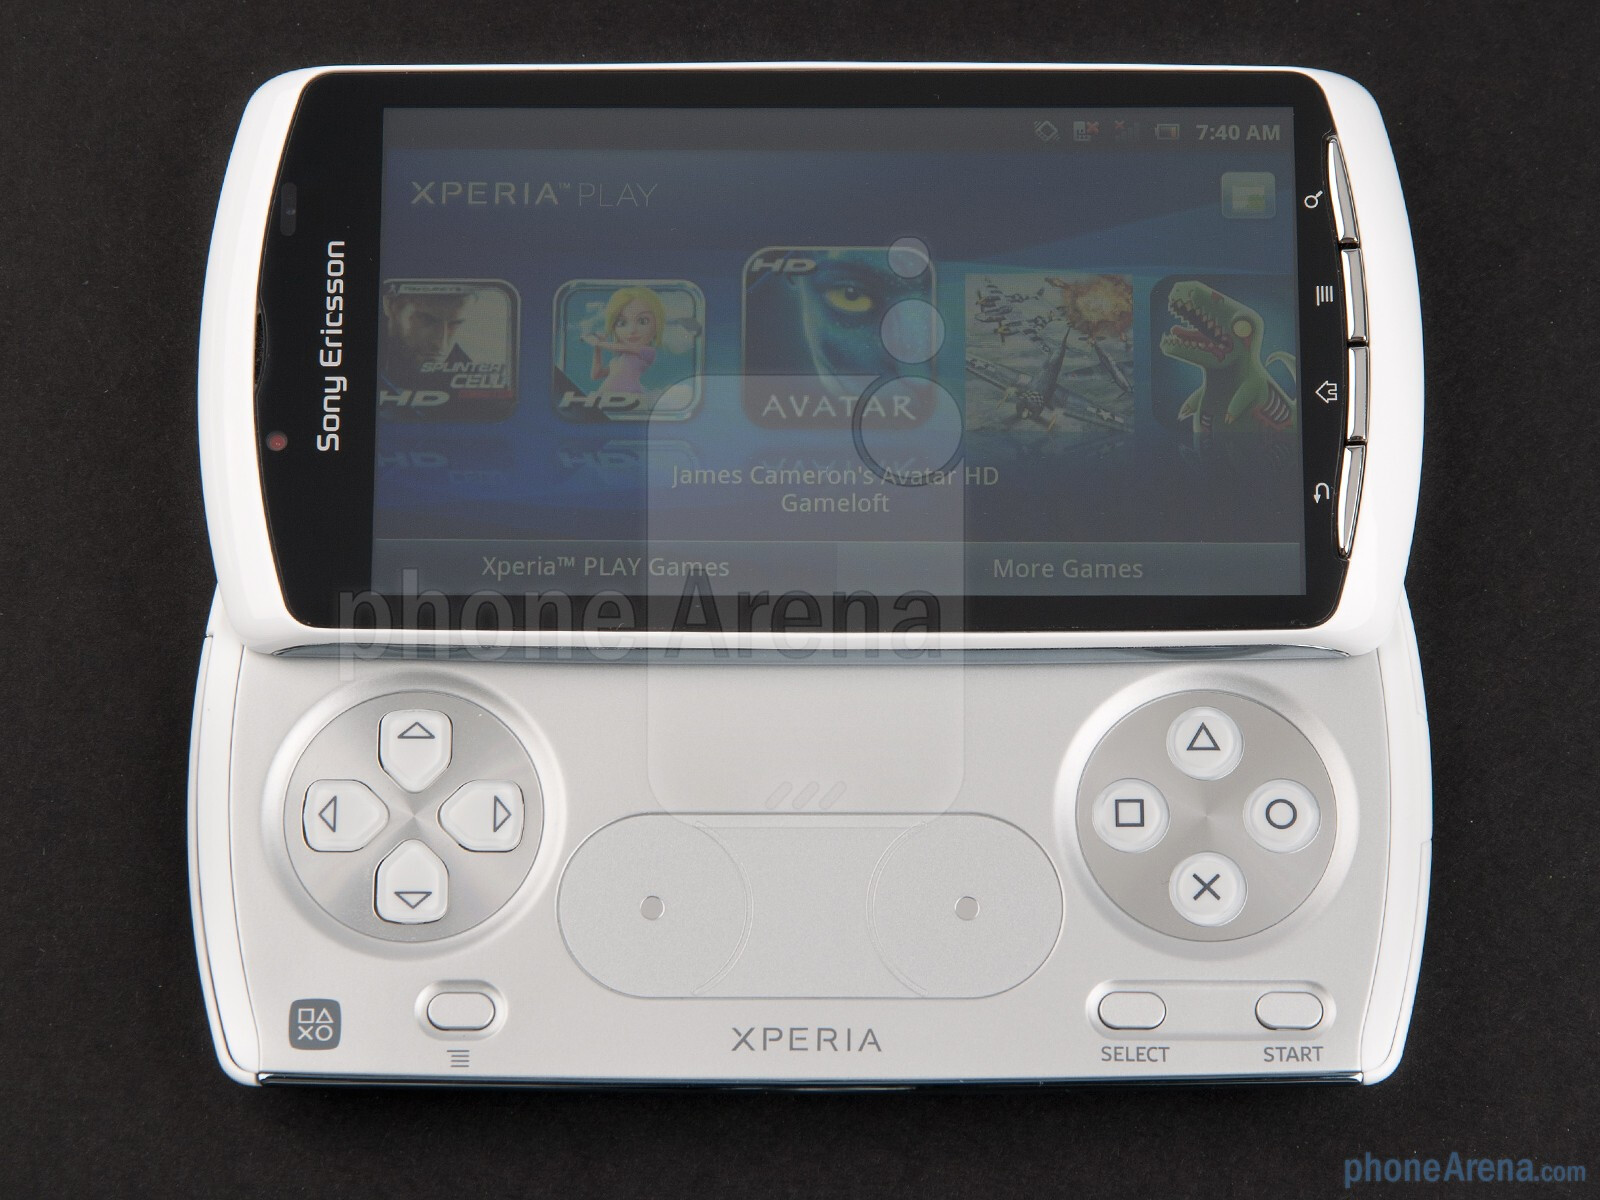 How to root Sony Xperia Play on Android 2.3 Gingerbread [Guide ...